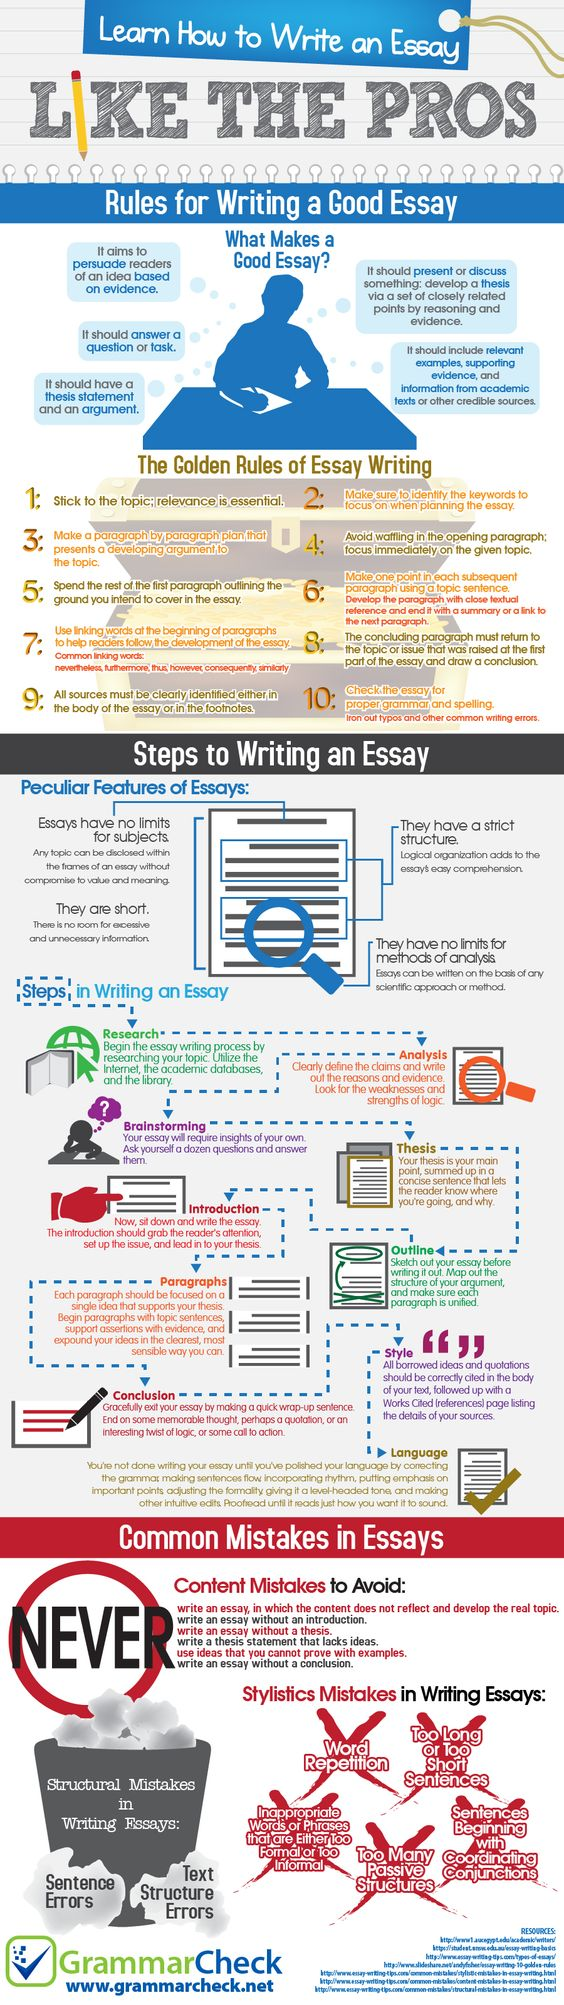 Essay writer joke website